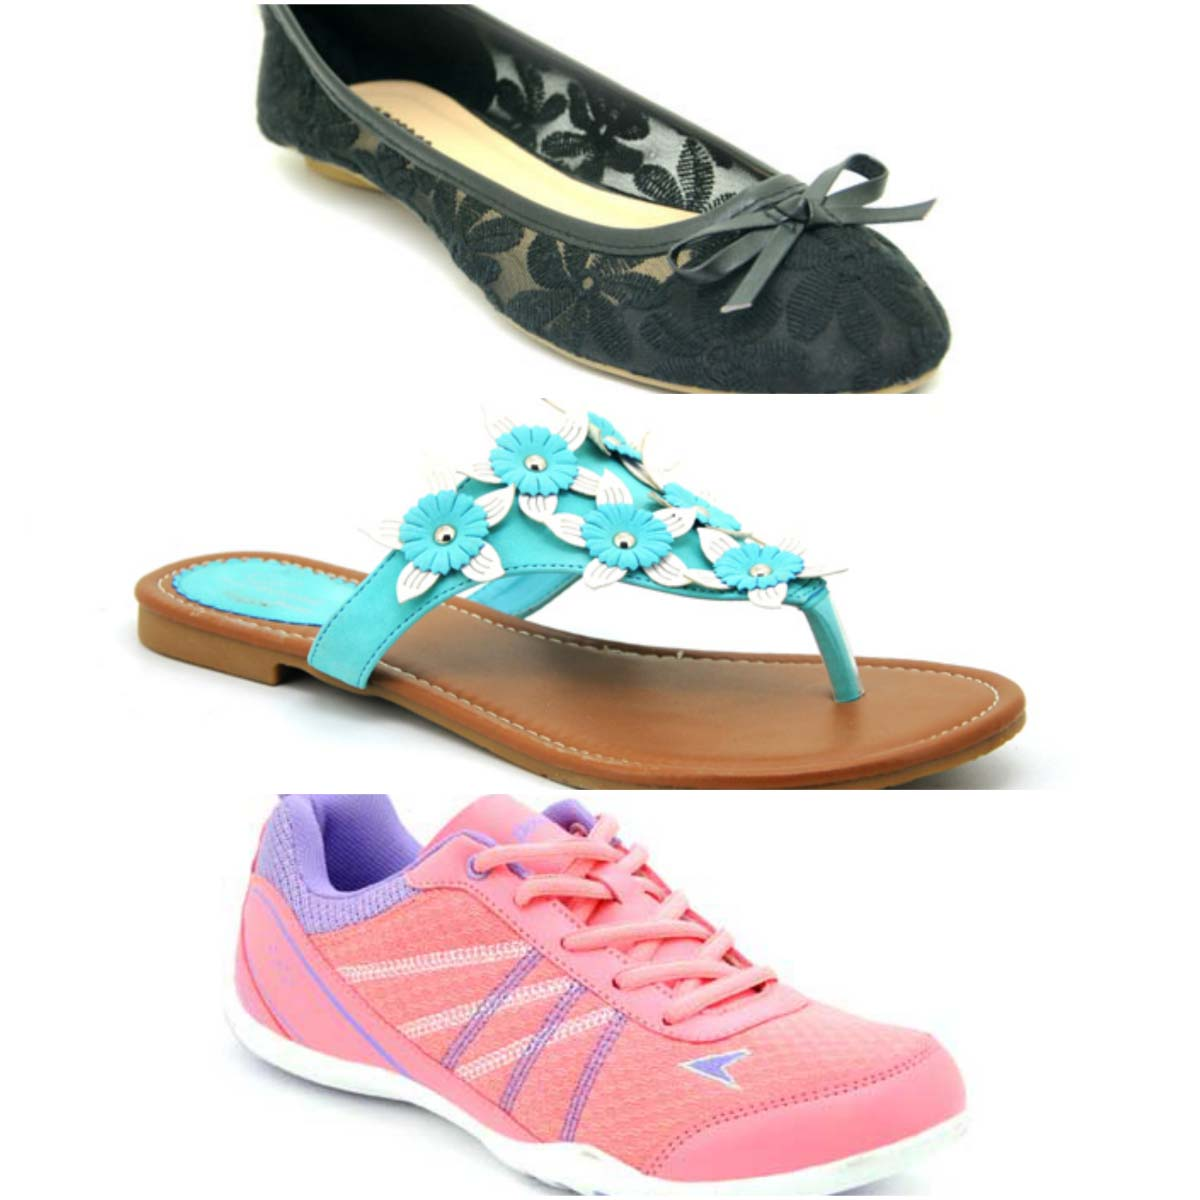 Unique Bata Summer Fancy Amp Casual Shoes Collection For Women 20162017 13